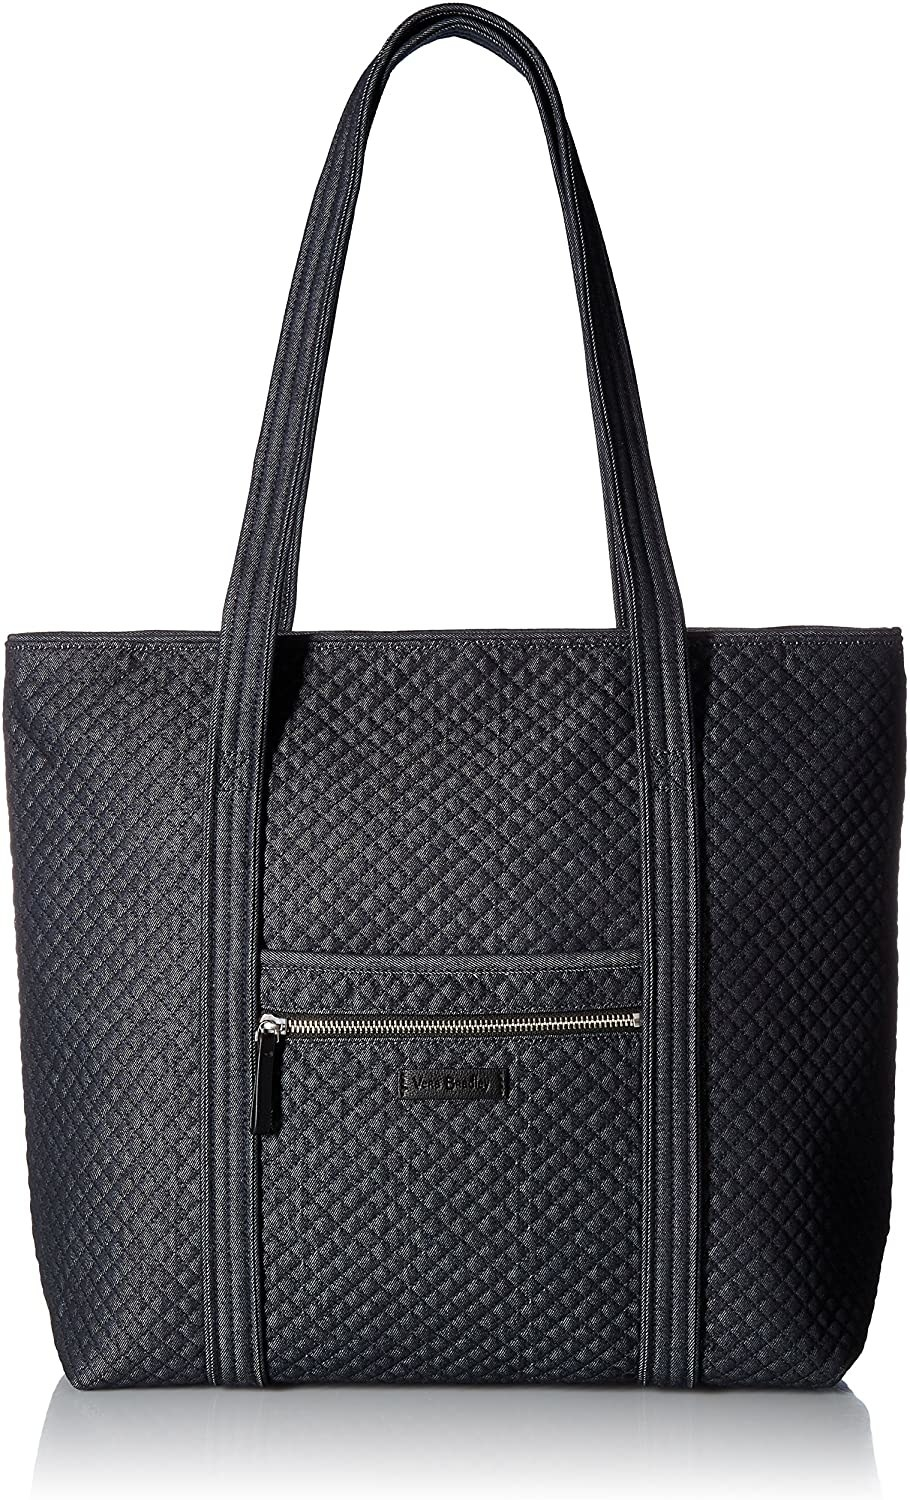 A quilted denim tote